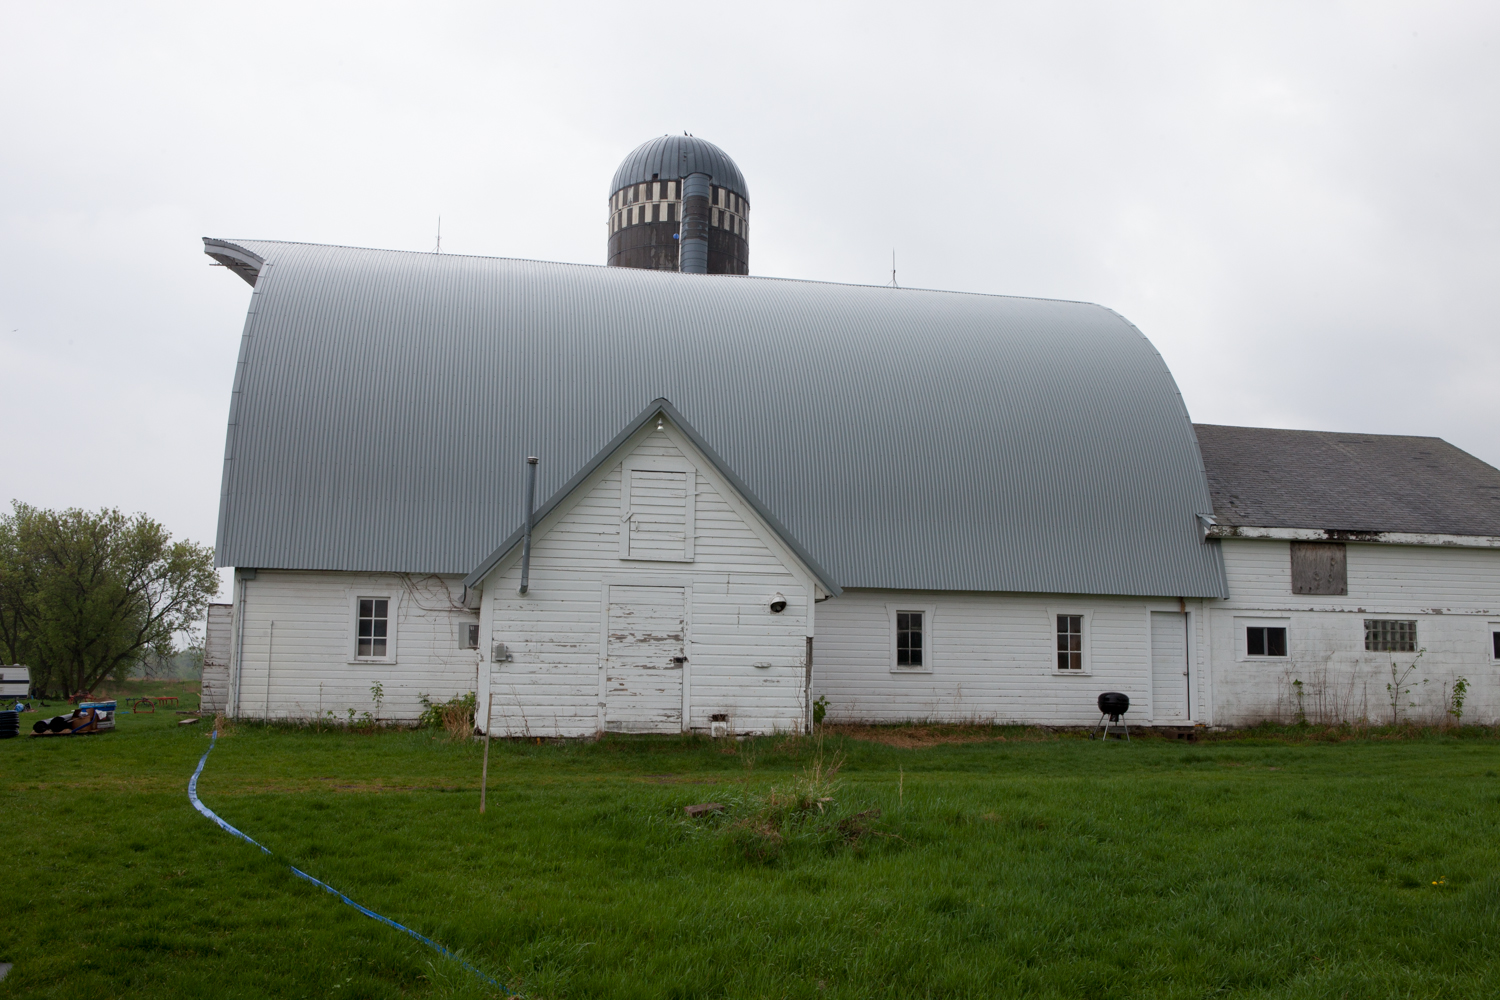 The new barn roof